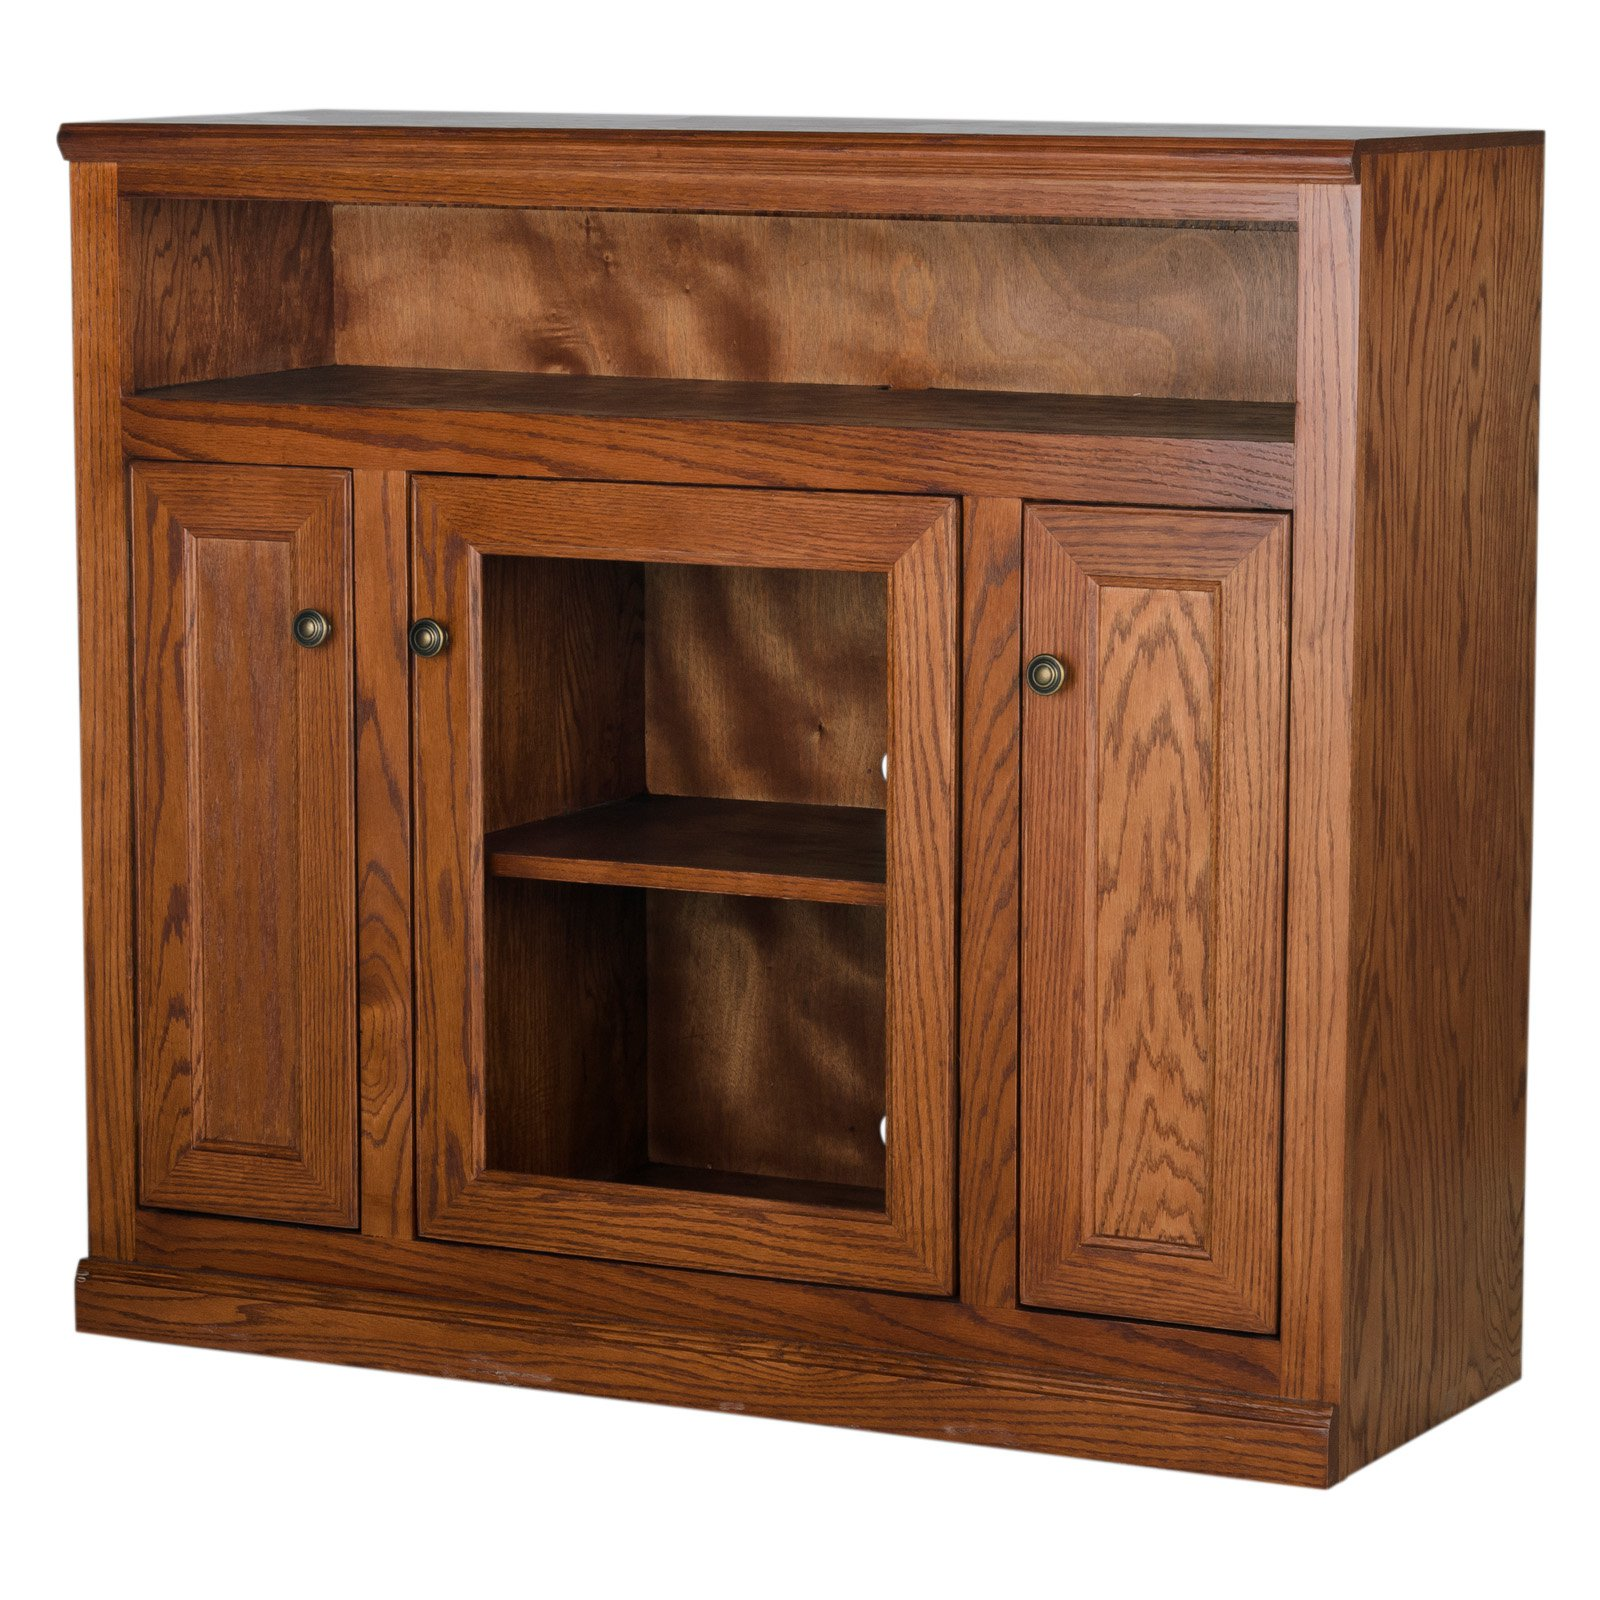 Eagle Furniture 45 in. Simply Oak Entertainment Console with 3 Doors